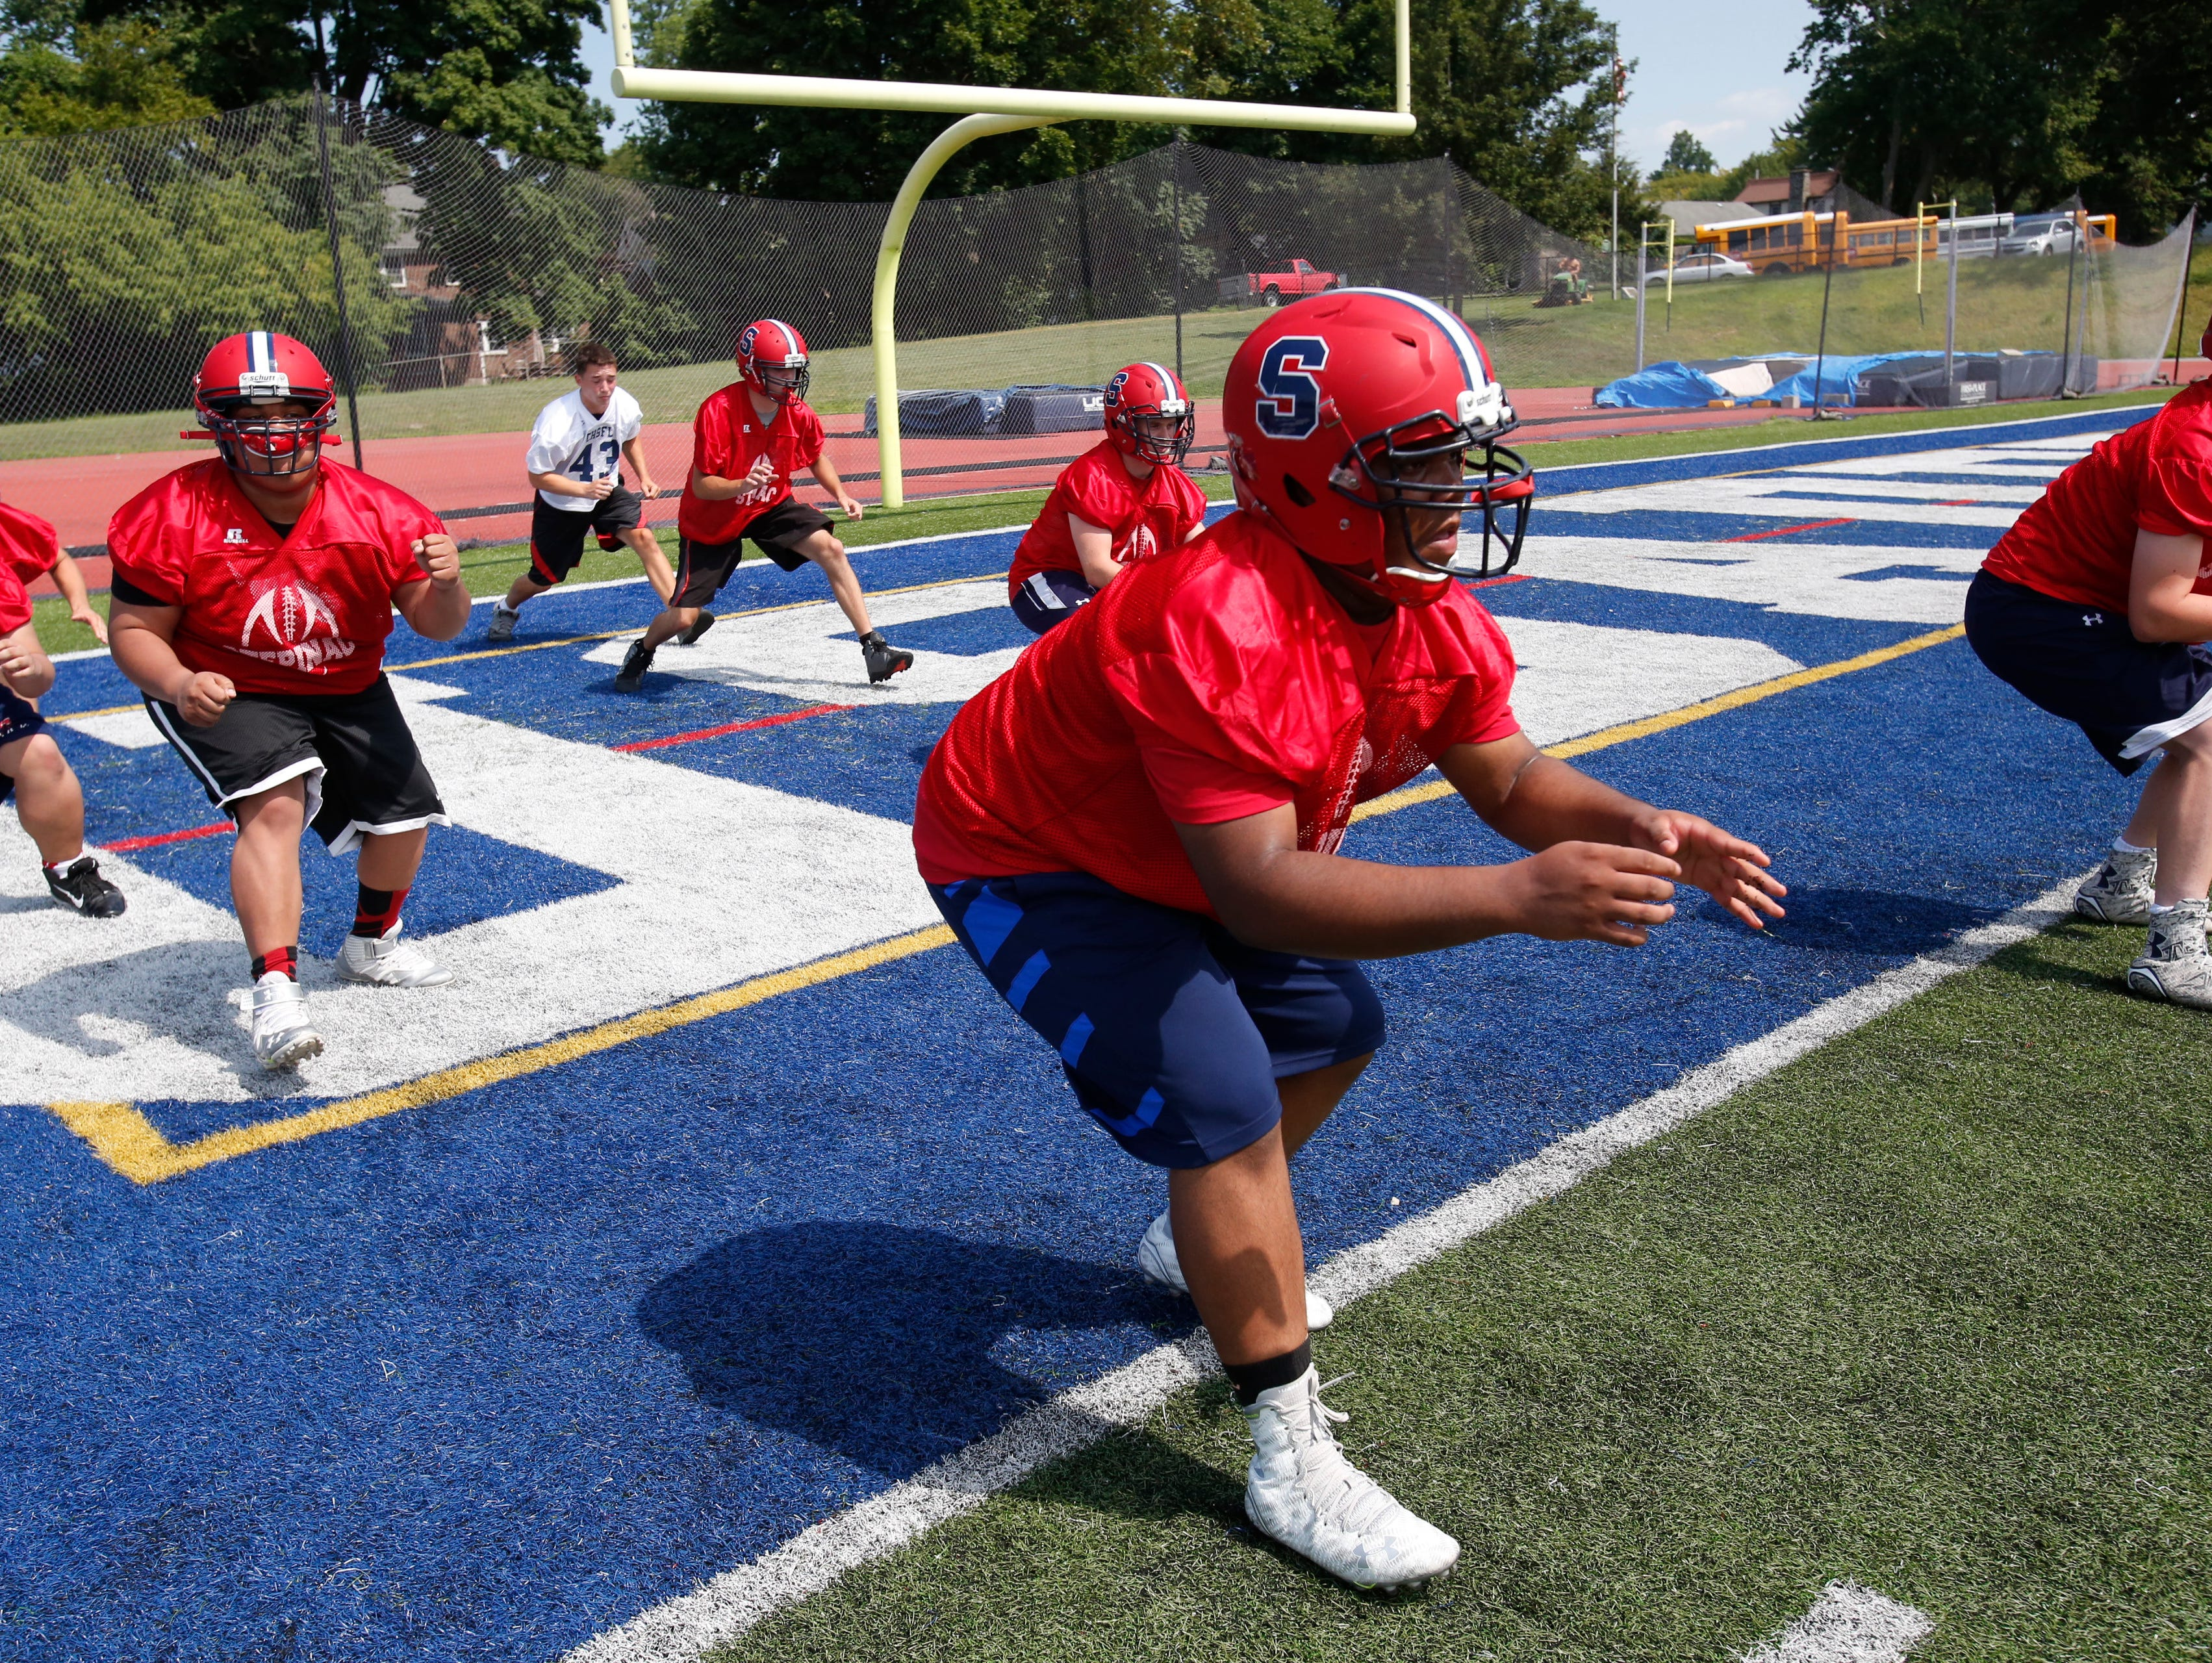 Archbishop Stepinac High School Football team go through drills during practice in White Plains on Aug. 24, 2015.